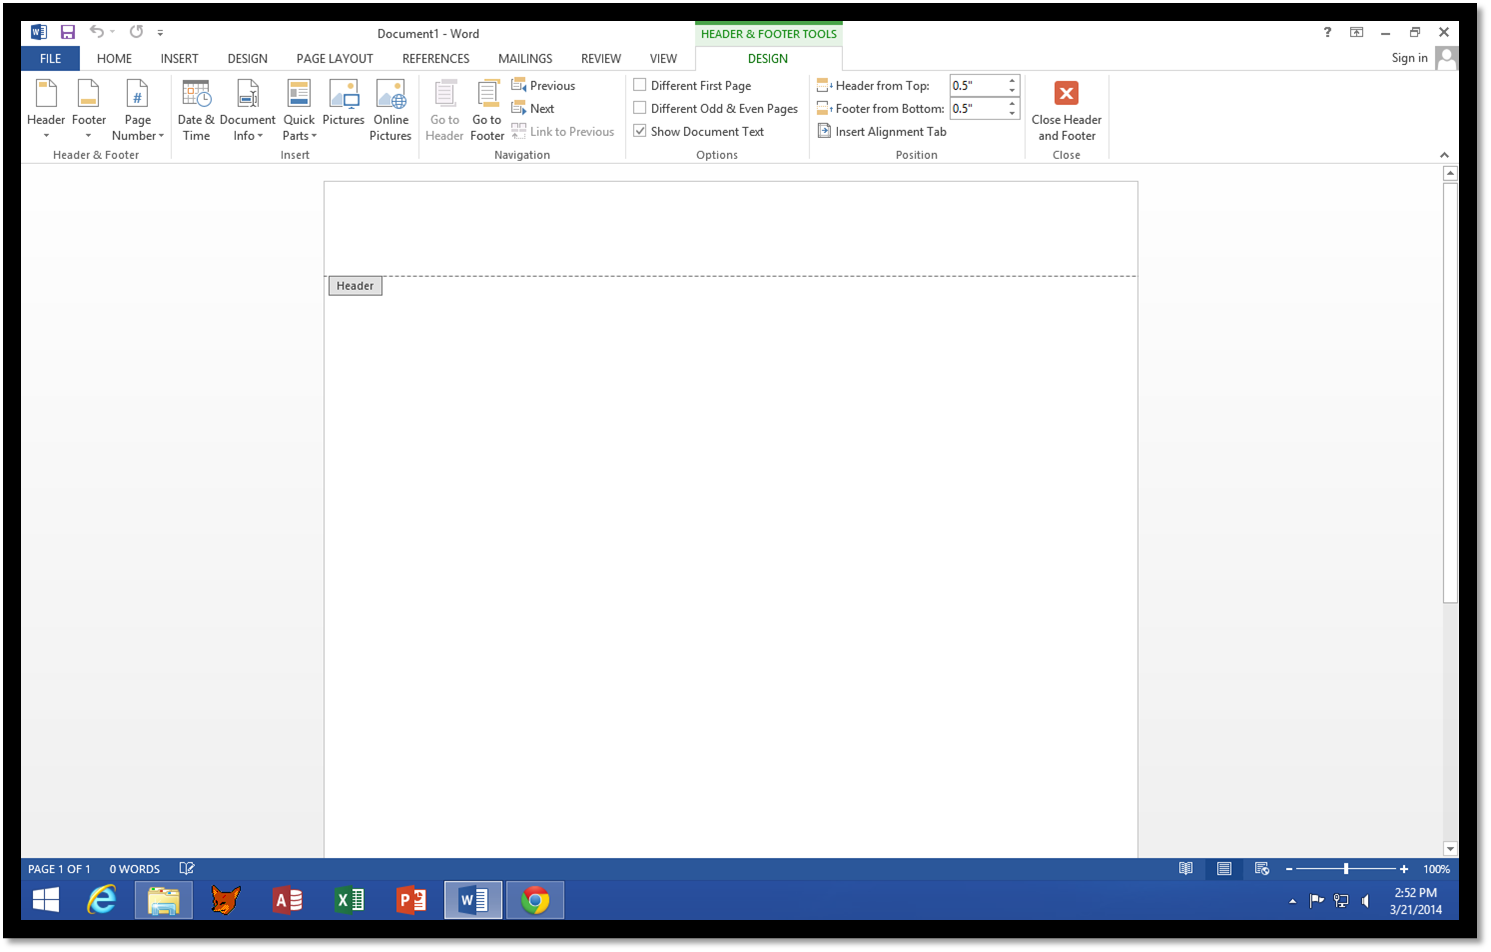 How to Access the Header Area in Microsoft Word 2013.